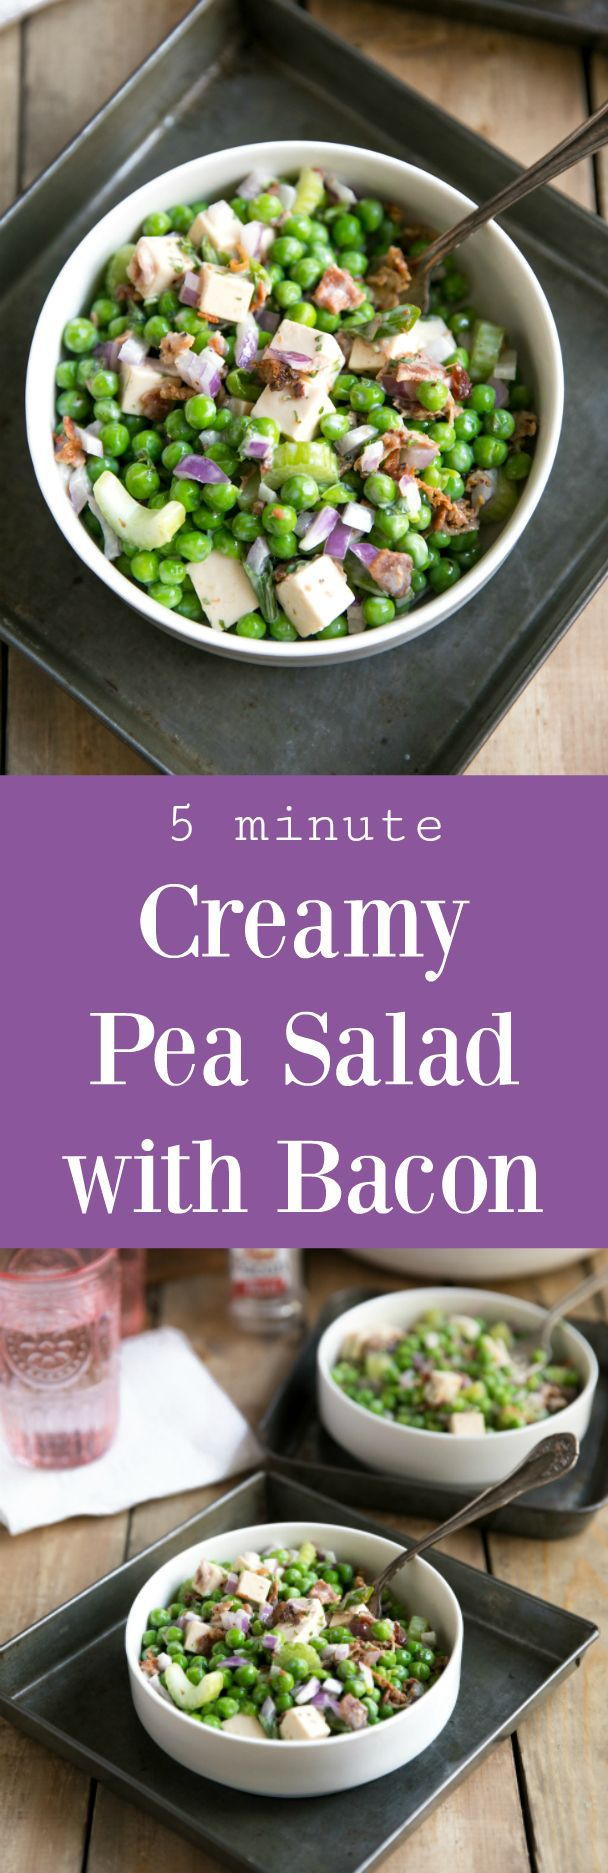 5 Minute Creamy Pea Salad with Bacon!! All you need is 5 minutes and a handful of simple ingredients to make this best ever pea salad! #sponsored @recipeasyfromhormelfoods #bacon #salad #football #easyrecipe #peasalad #cheese